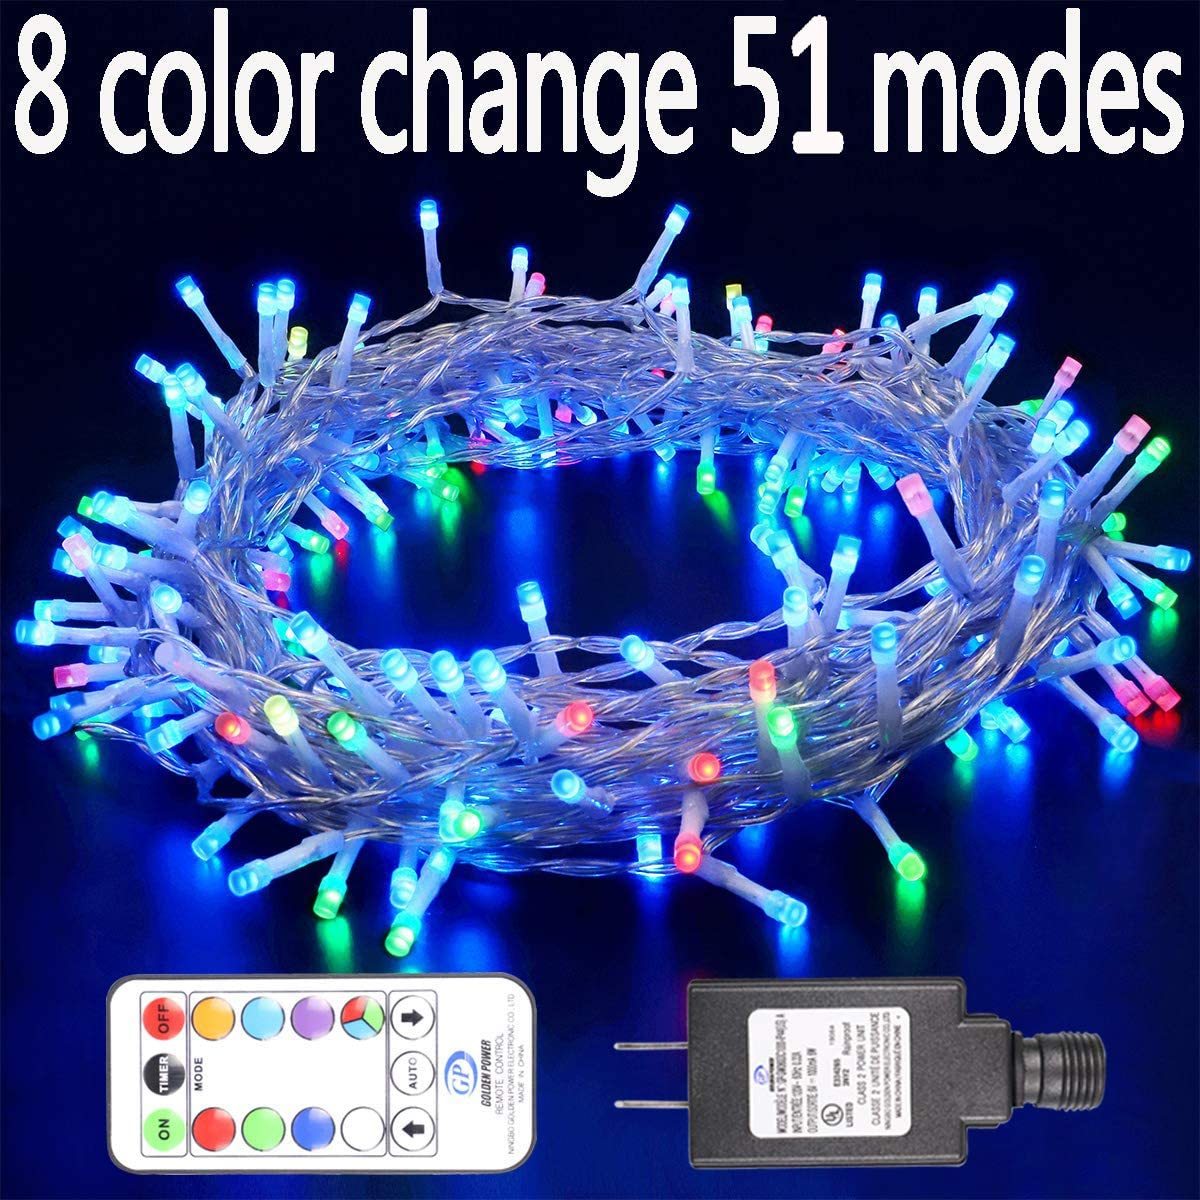 Hopolon 8 Vibrant Color Change String Lights,42.6feet 96LED RGB Decorative Fairy Lights, 51 Modes with Remote,UL Plug in Xmas Lights with 6V Safe Voltage 96LED, RGB